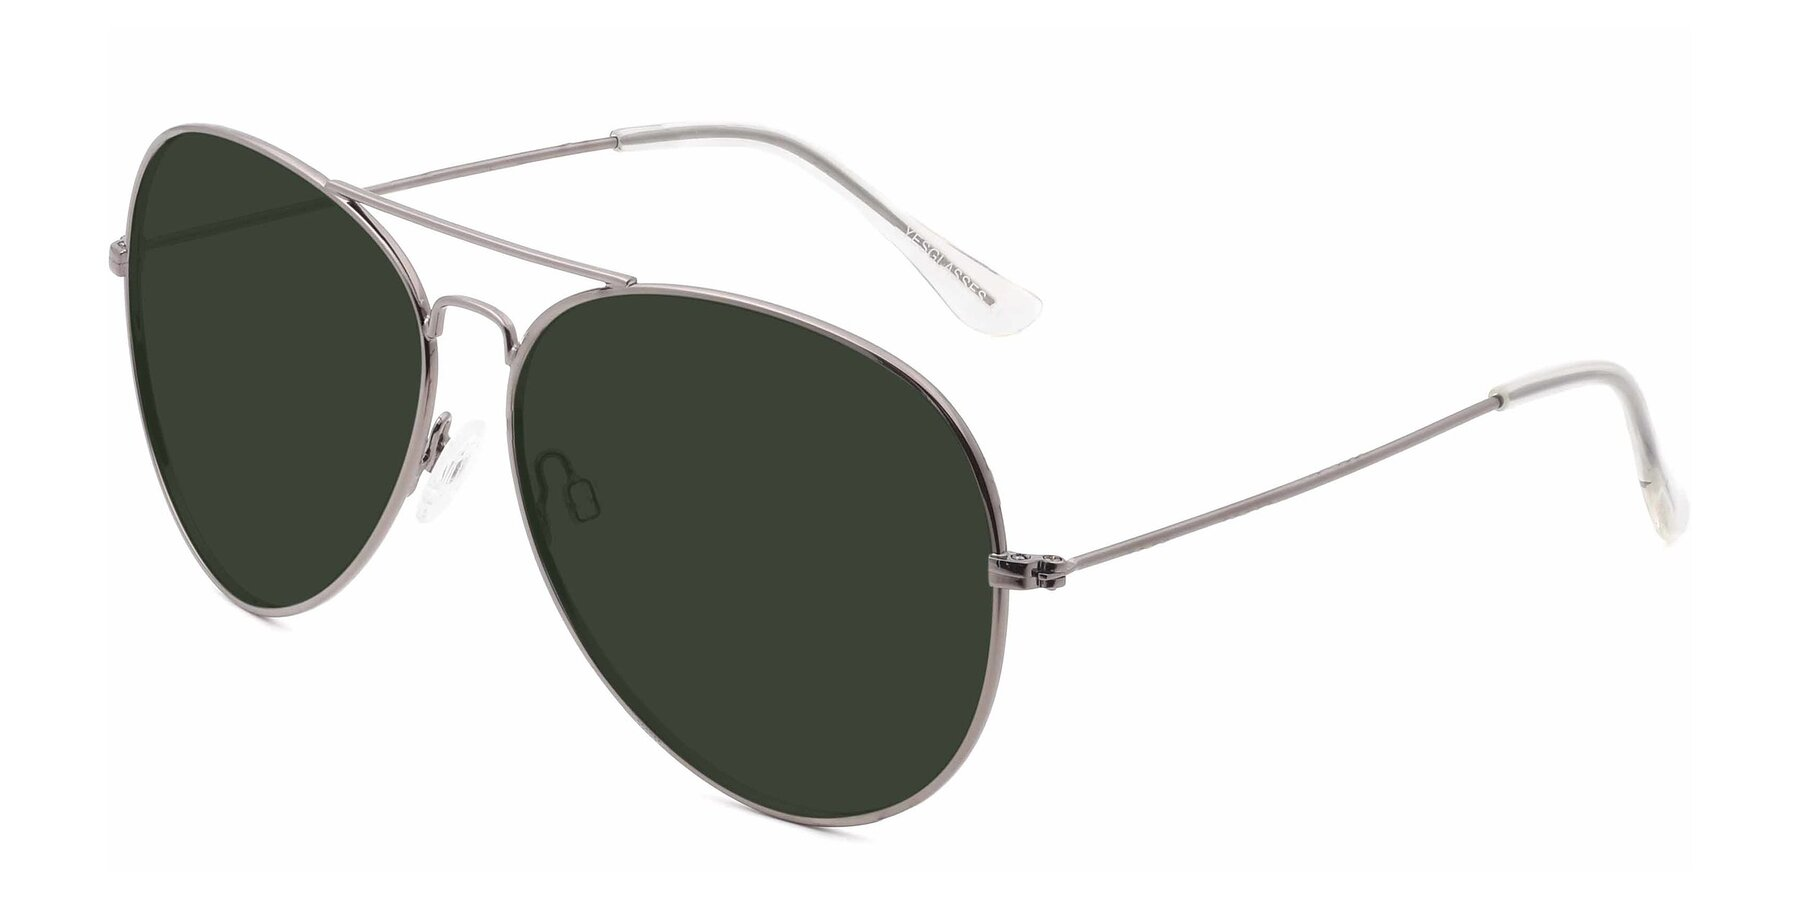 Angle of SSR179 in Gunmetal with Green Tinted Lenses